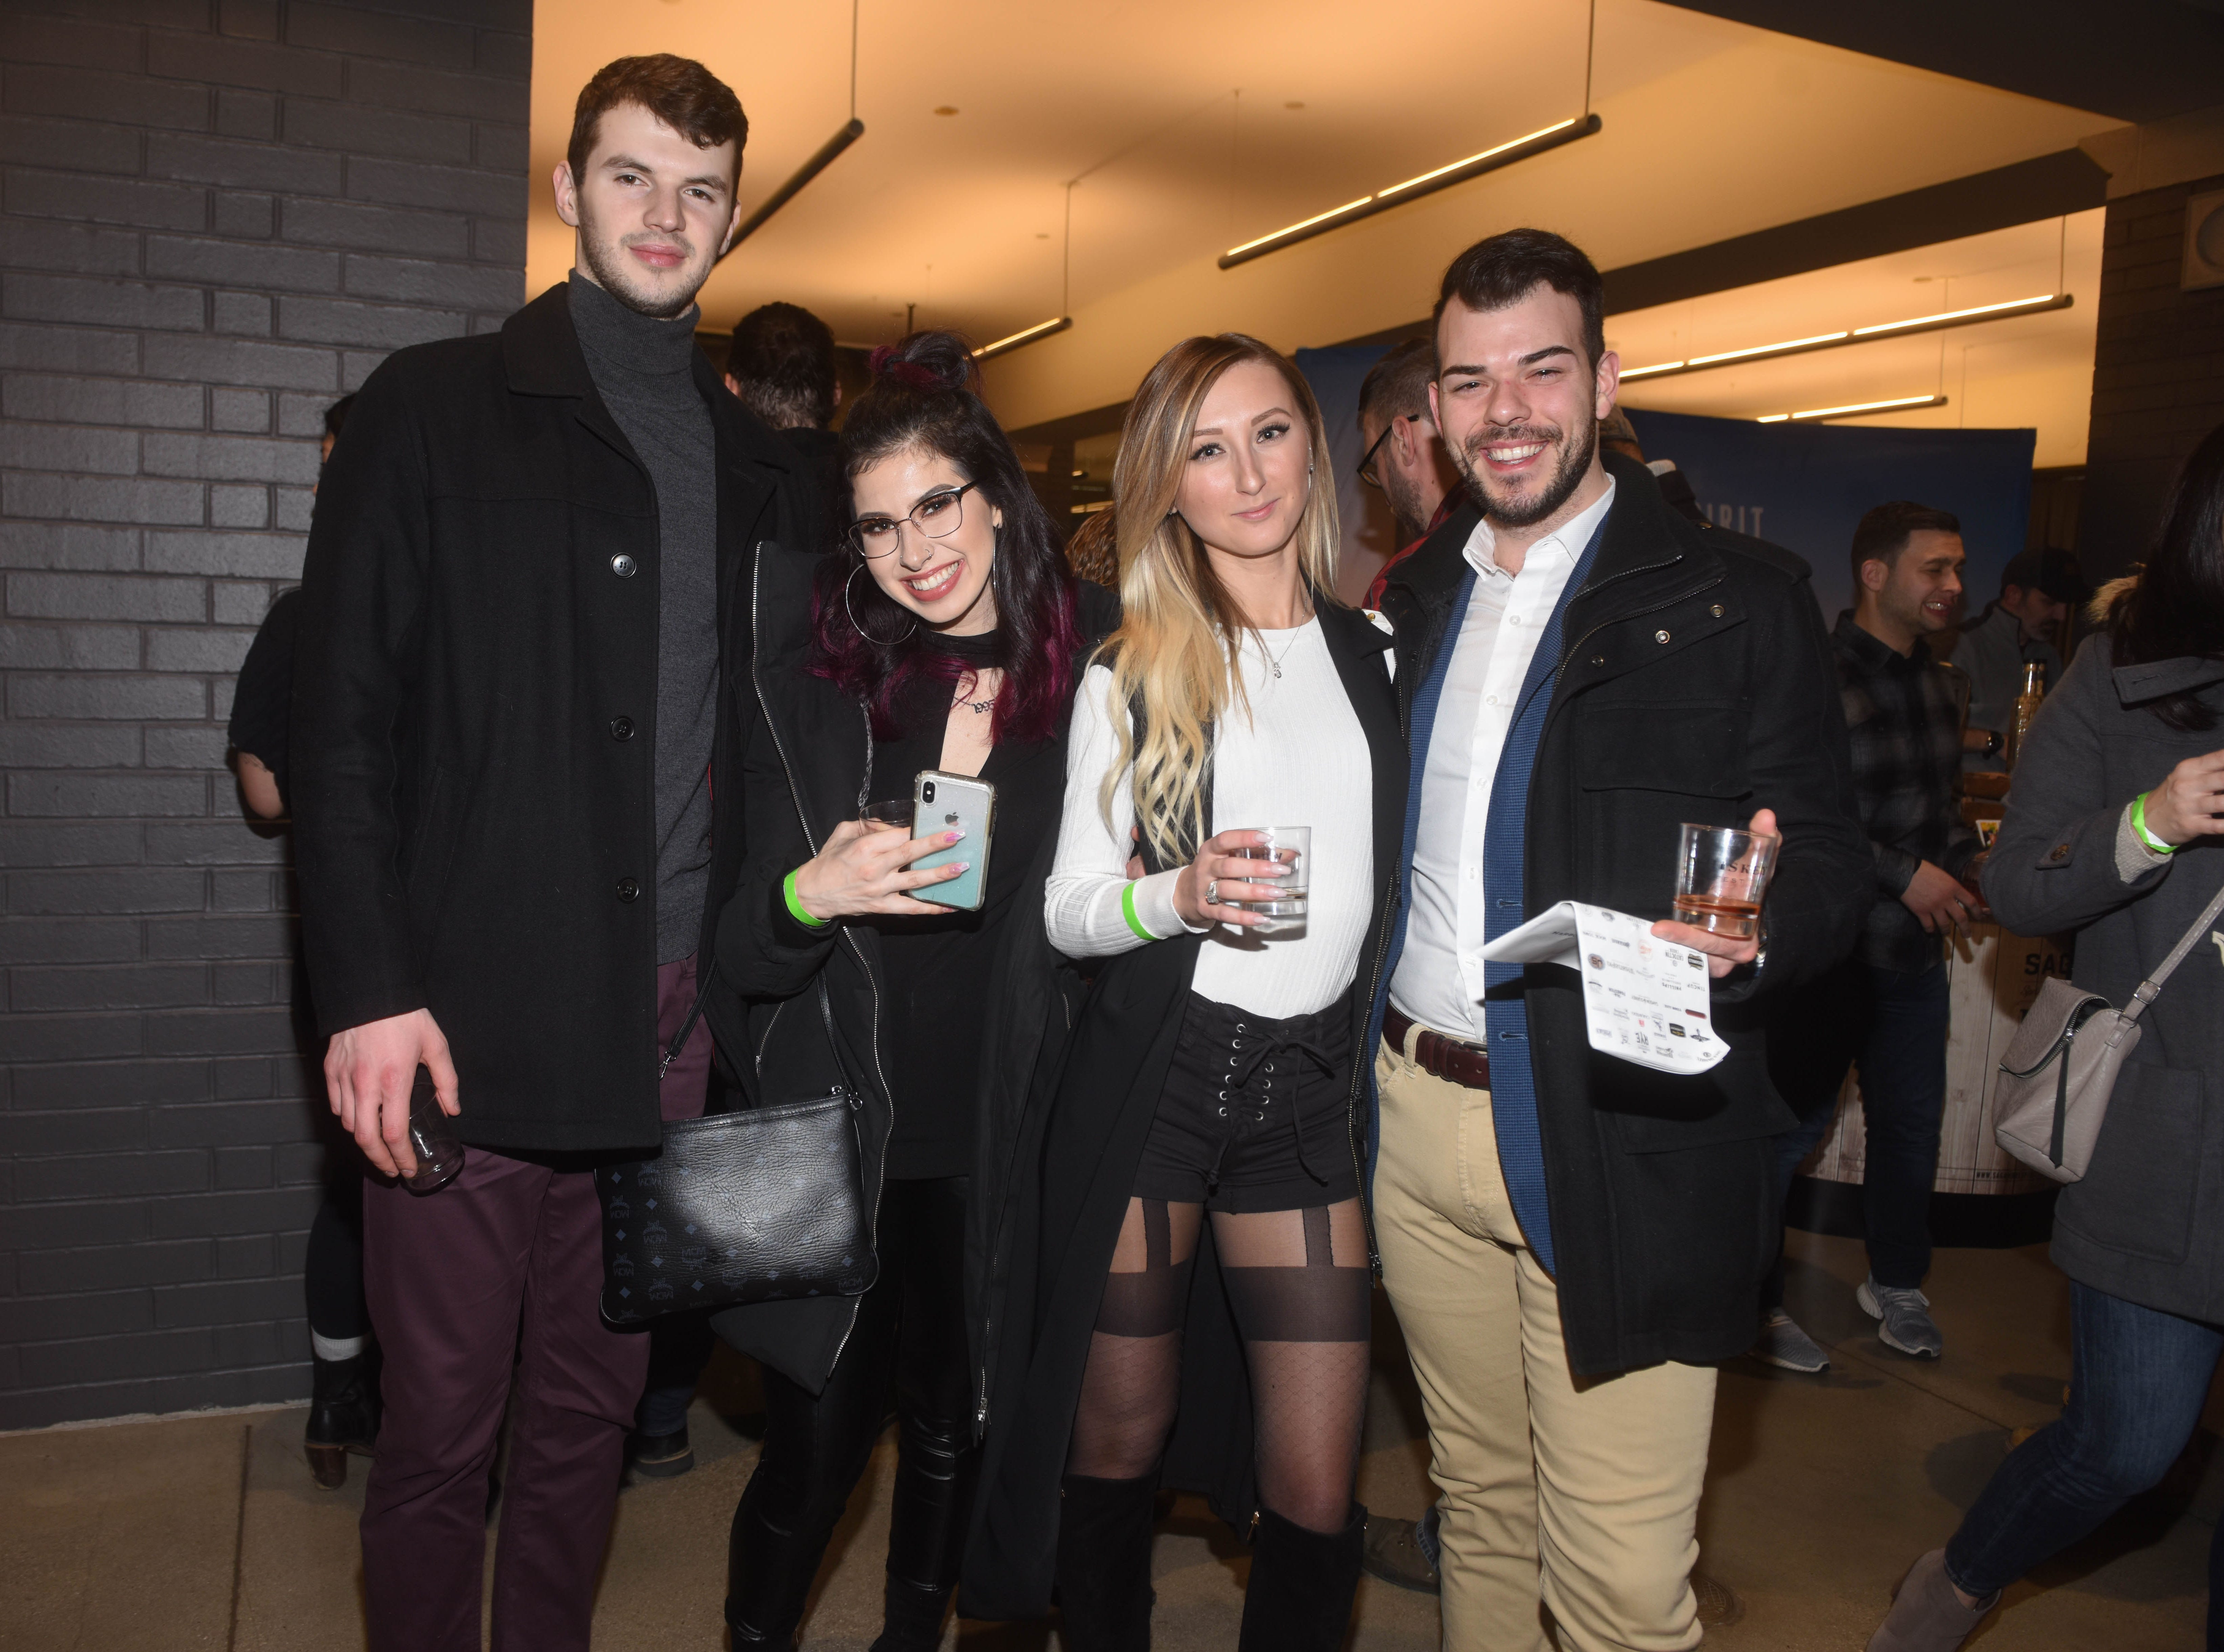 Zak, Sophia, Karolina and Dominic. Jersey City Whiskey Fest was held at Harborside Atrium. The event featured over 100 styles of whiskey and spirits. 02/01/2019